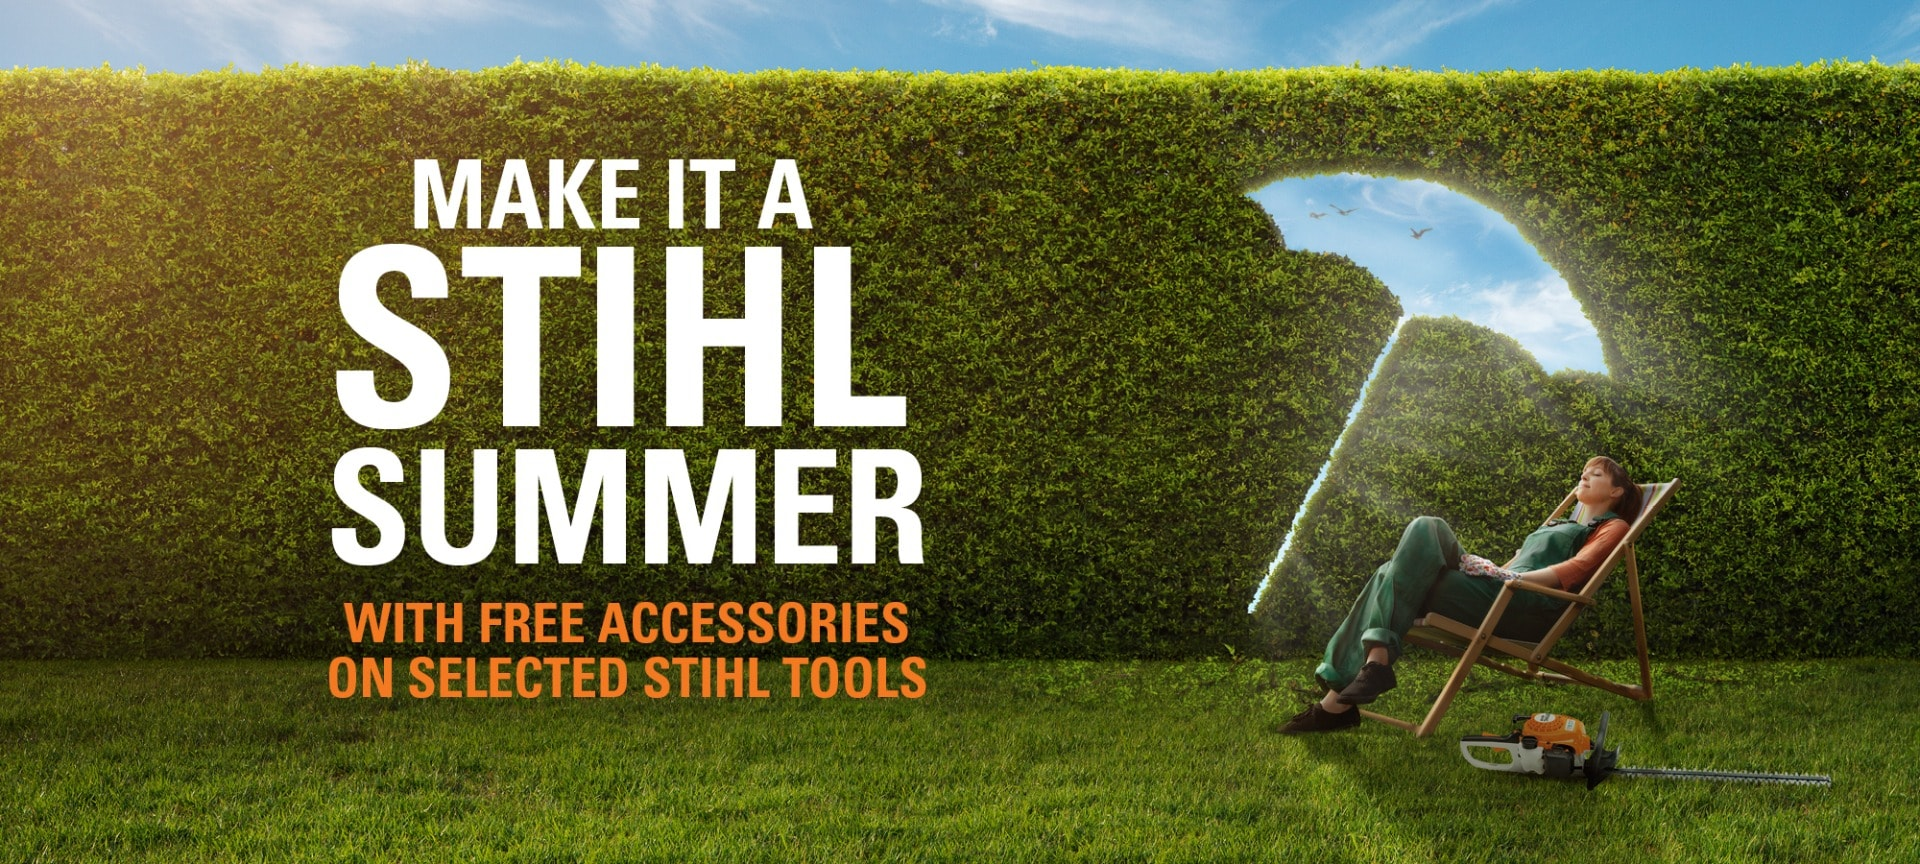 STL12585 Summer RAP 2020 2000X900 STIHL SHOP Desktop Big Top Banner